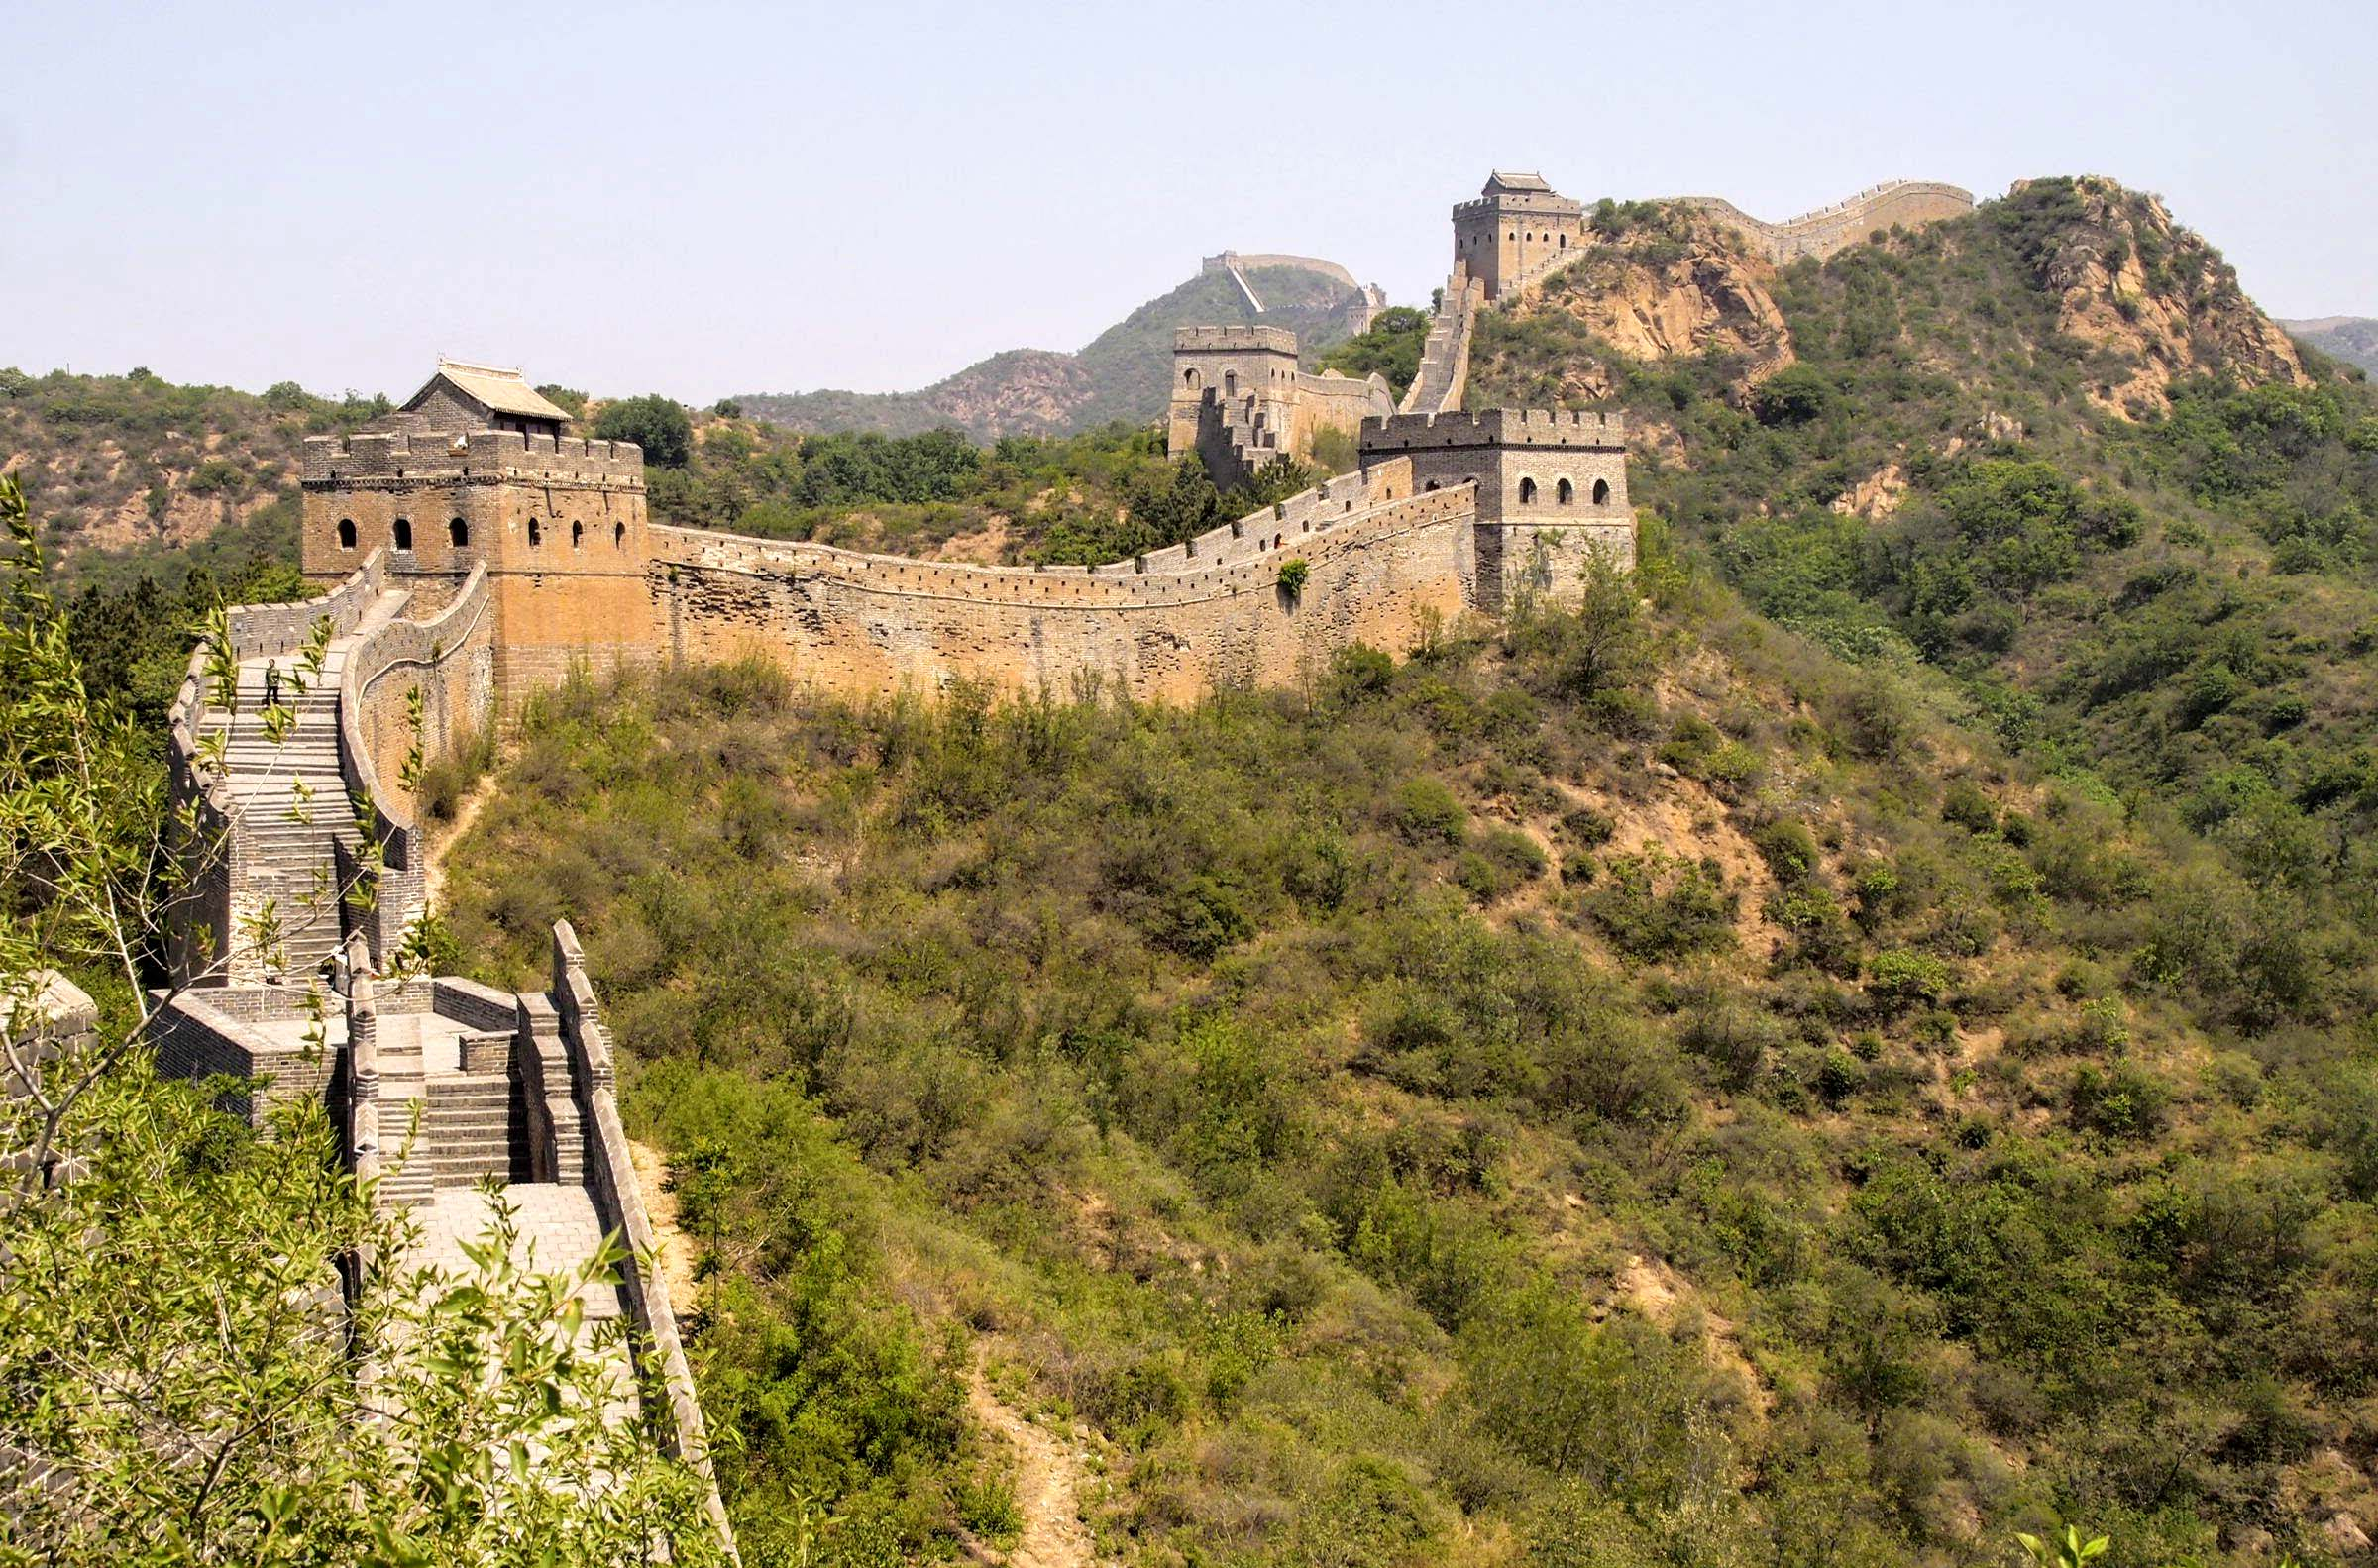 A Childhood Bucket List Hiking The Great Wall Of China